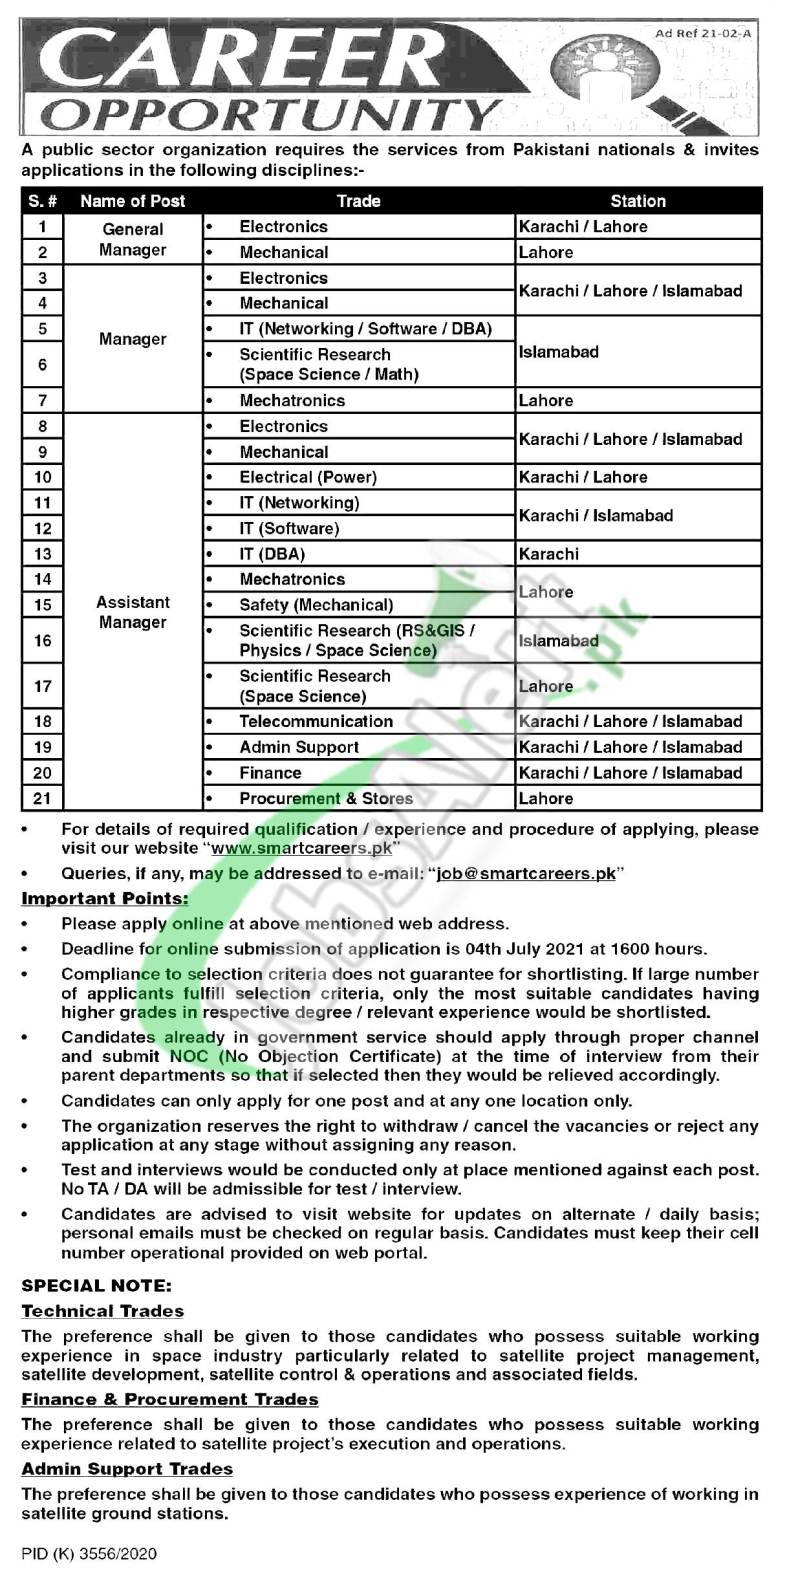 SUPARCO Jobs 2021 for Assistant Manager in Islamabad & Karachi